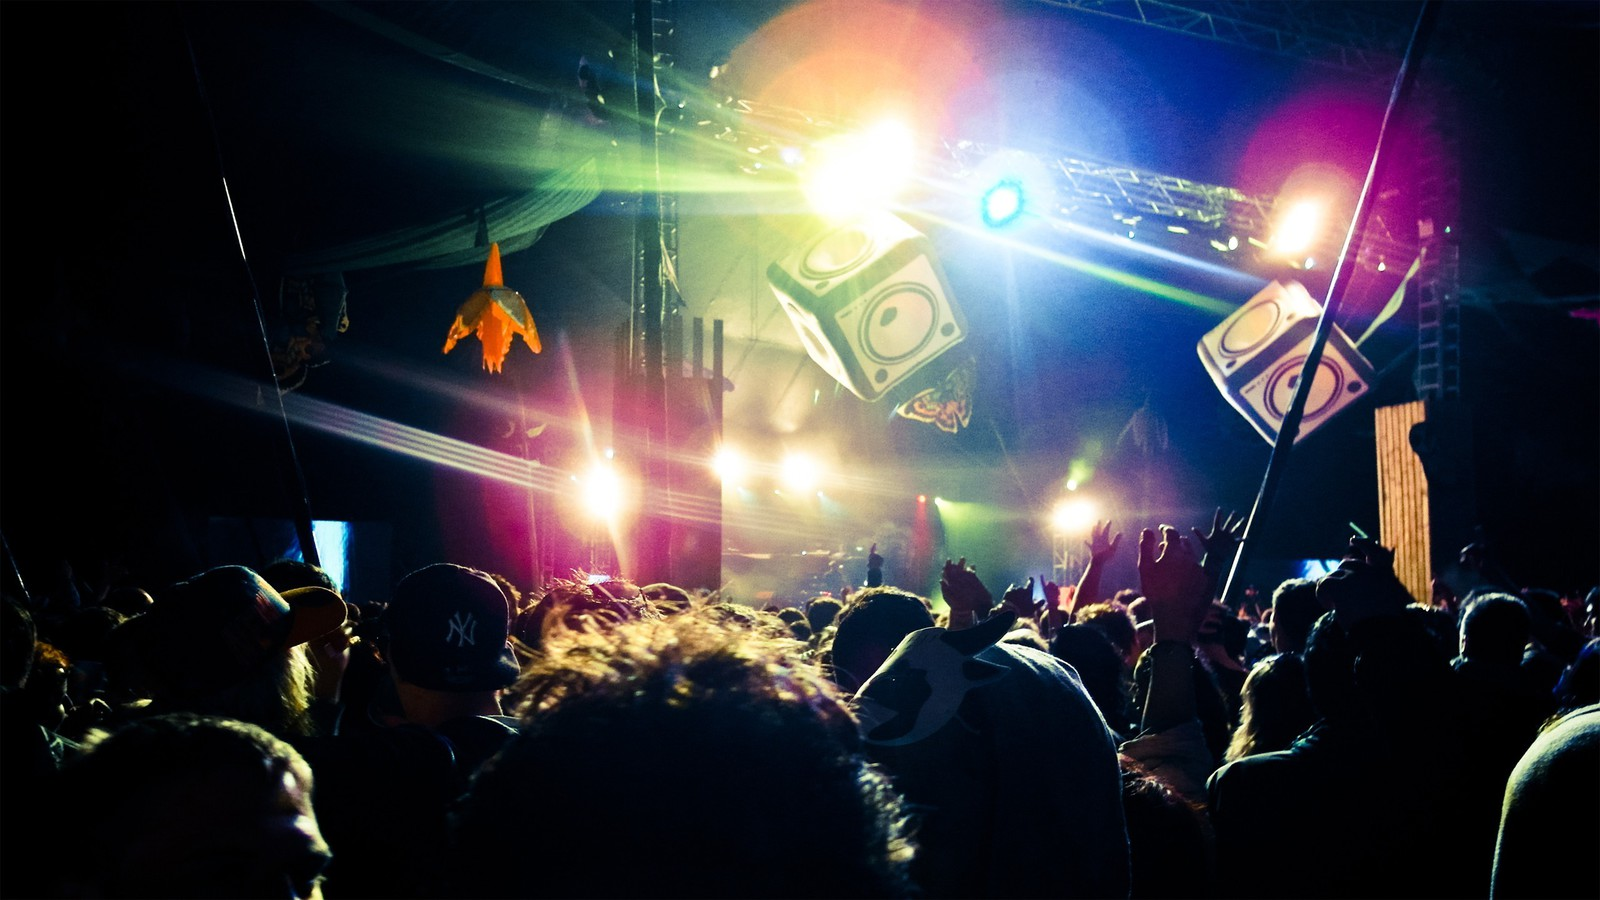 Night lights people party events wallpaper | AllWallpaper ...